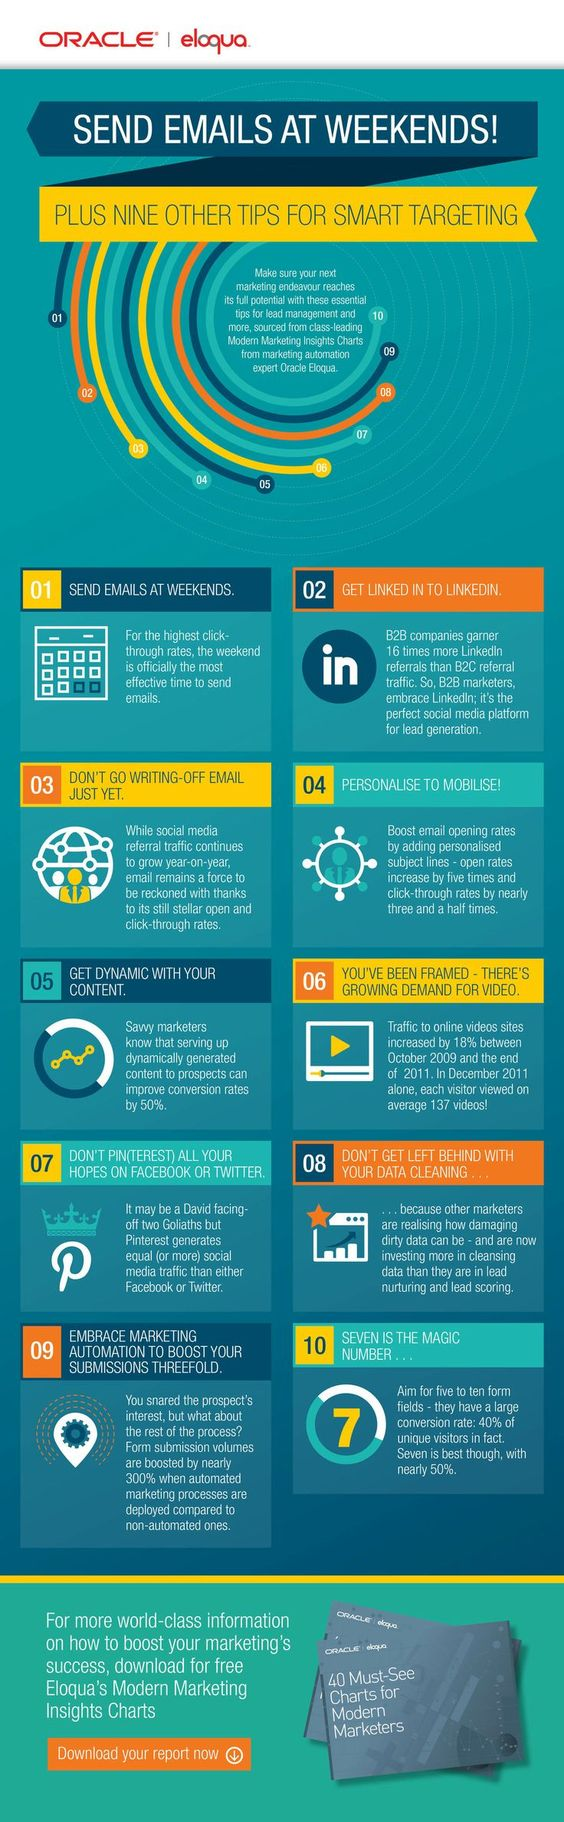 Don't Pin(terest) All Your Hopes On Facebook Or Twitter Plus 9 Other Tips For Smart Targeting - infographic